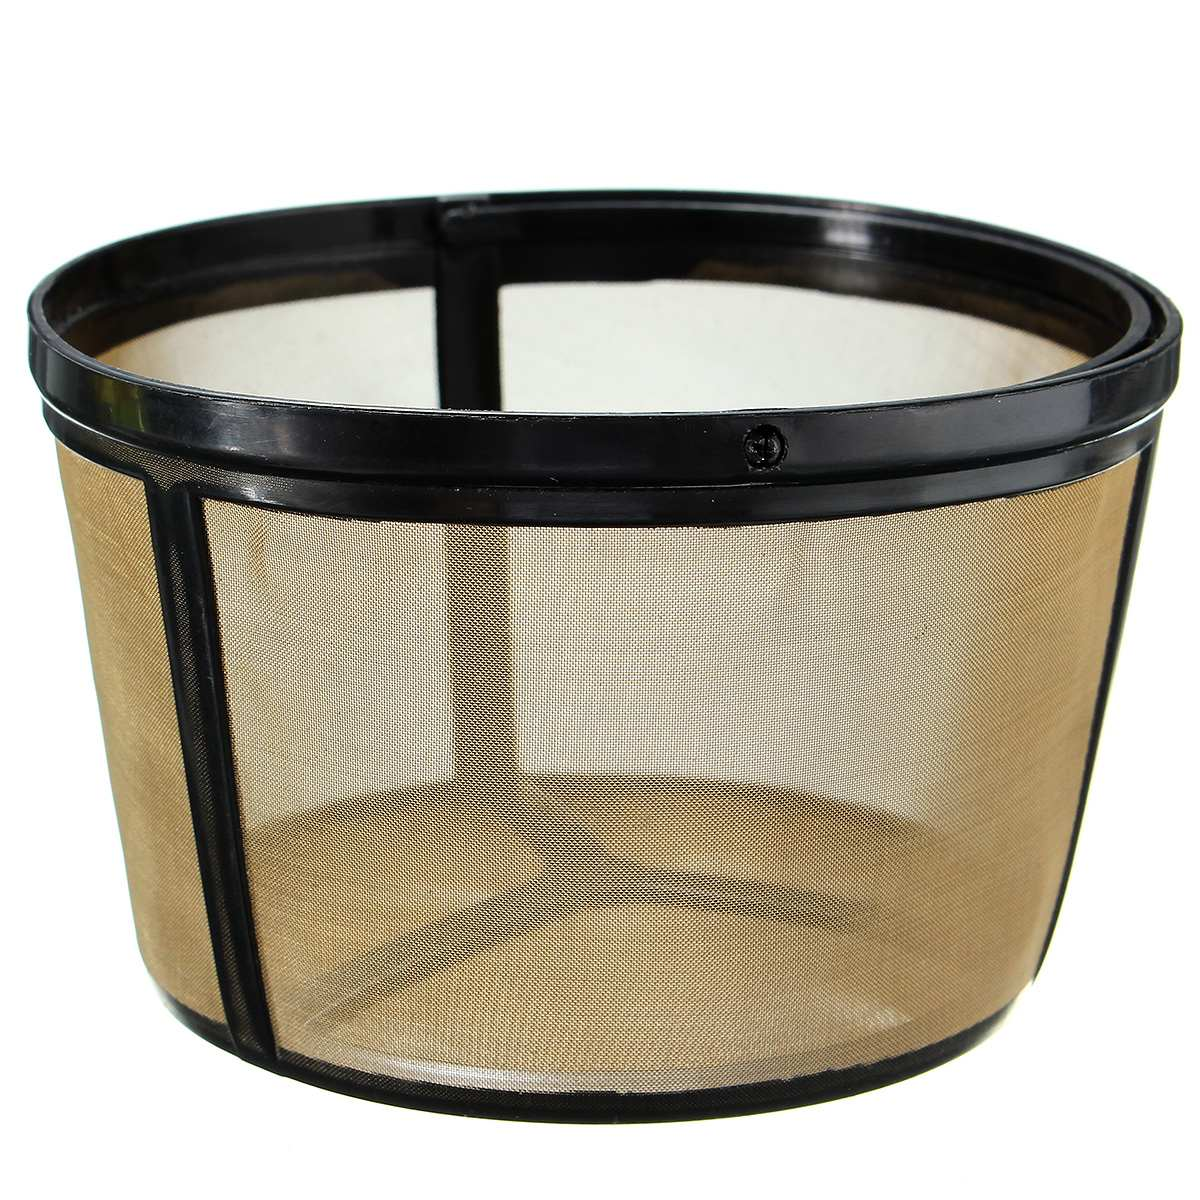 Brand New Washable Coffee Filter Basket Reusable Replacement For BUNN Coffee Brewer Maker  120mm